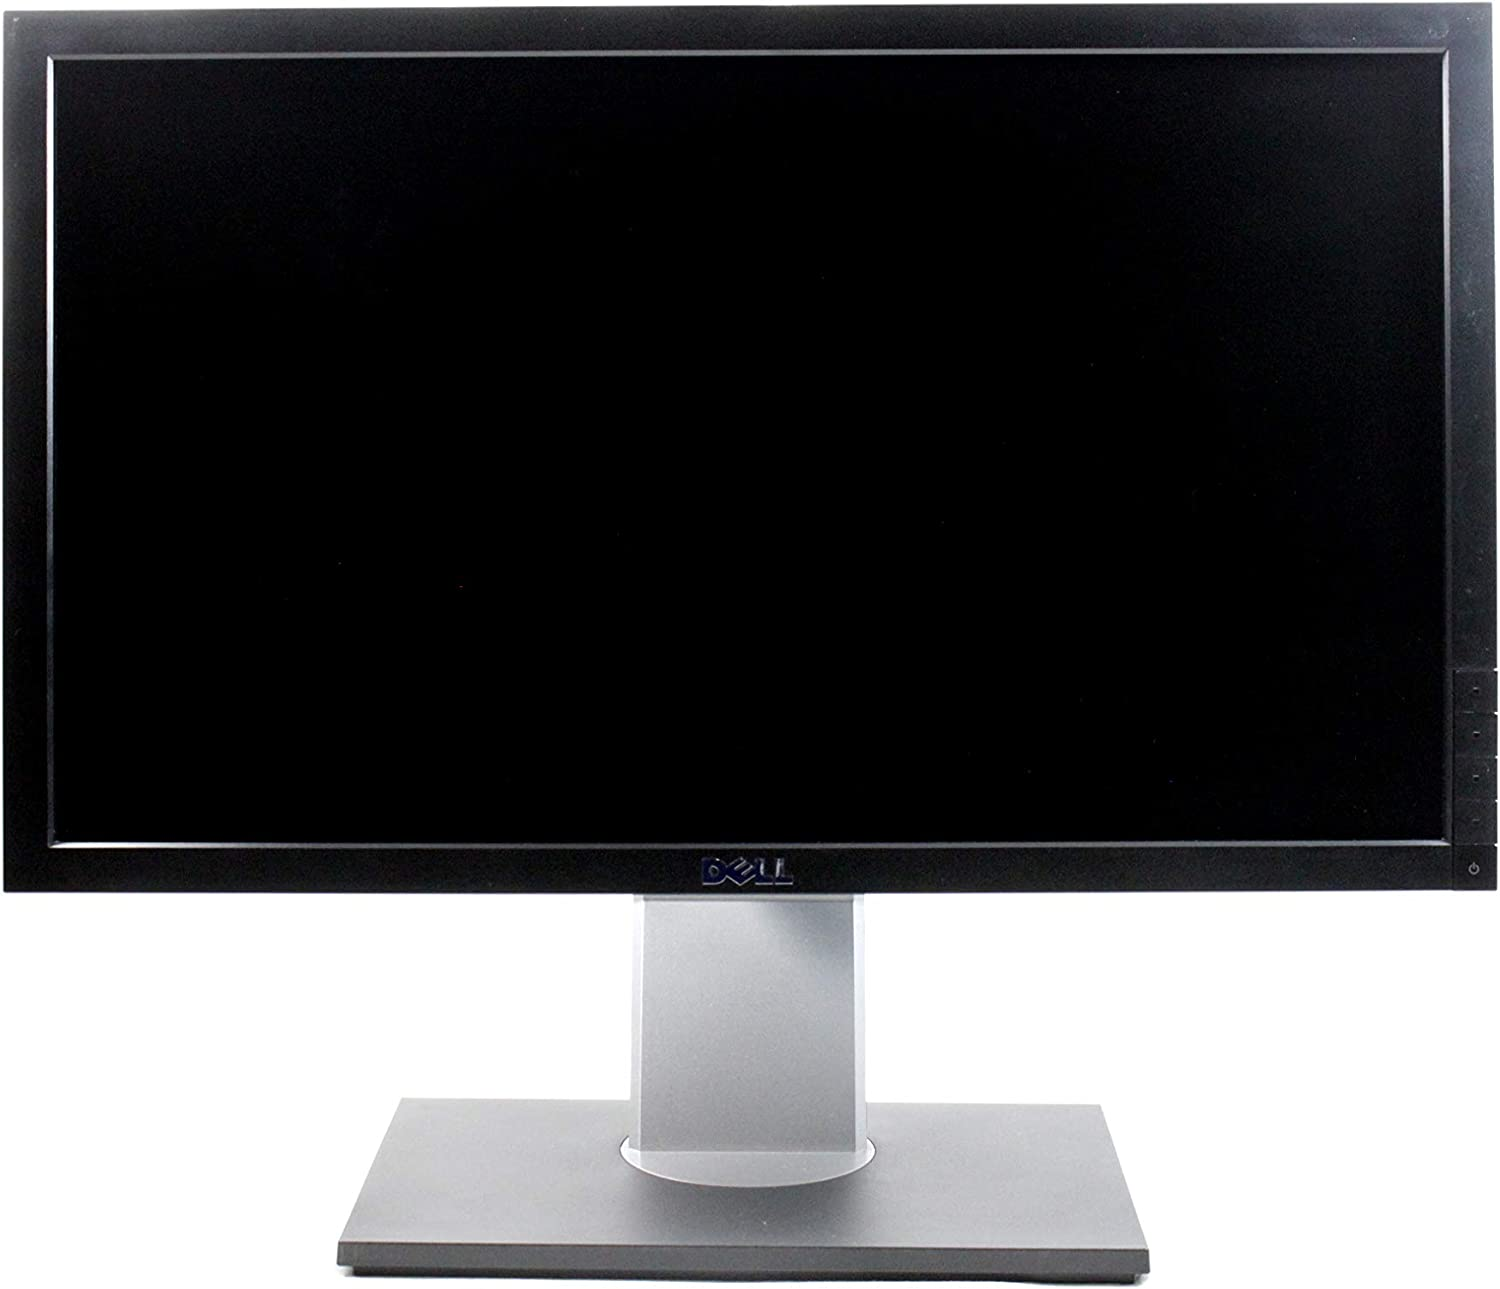 DELL P2211HT DELL 22 WIDESCREEN LCD MONITOR